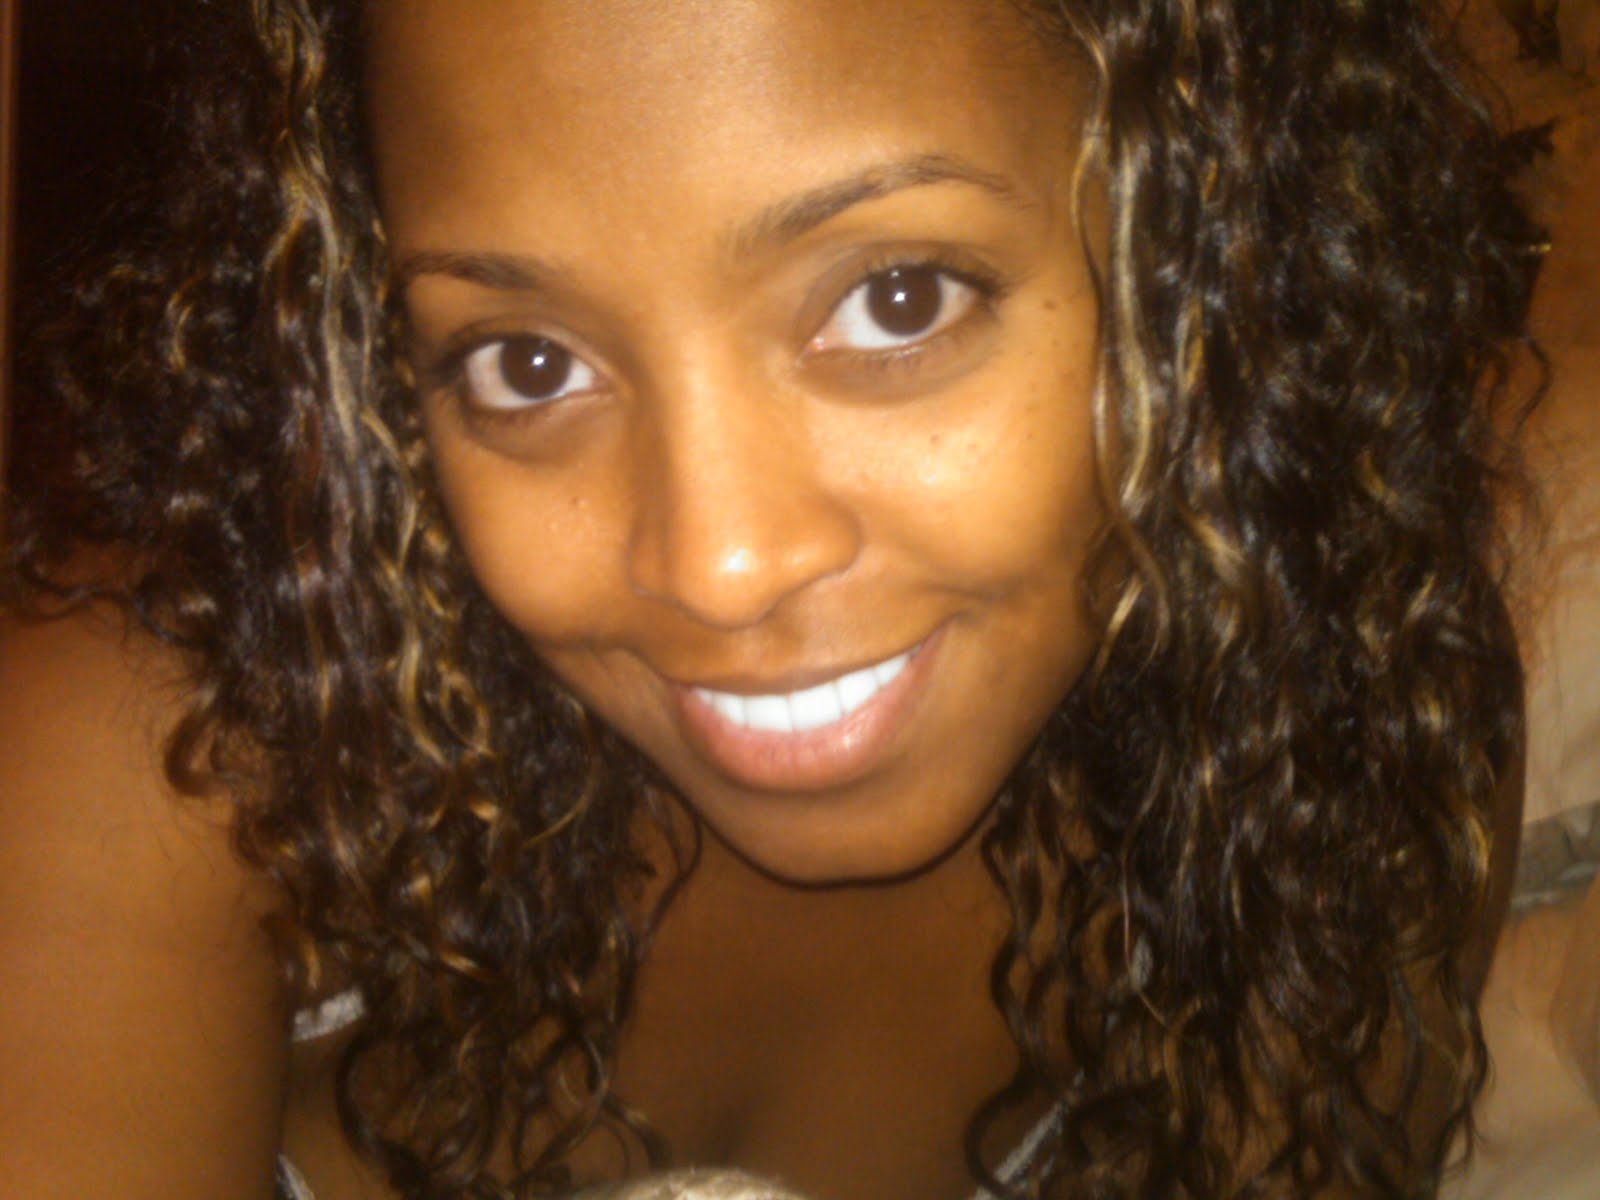 Real Nudest Family http://www.curlynikki.com/2011/02/keshia-knight-pulliam-natural-hair.html